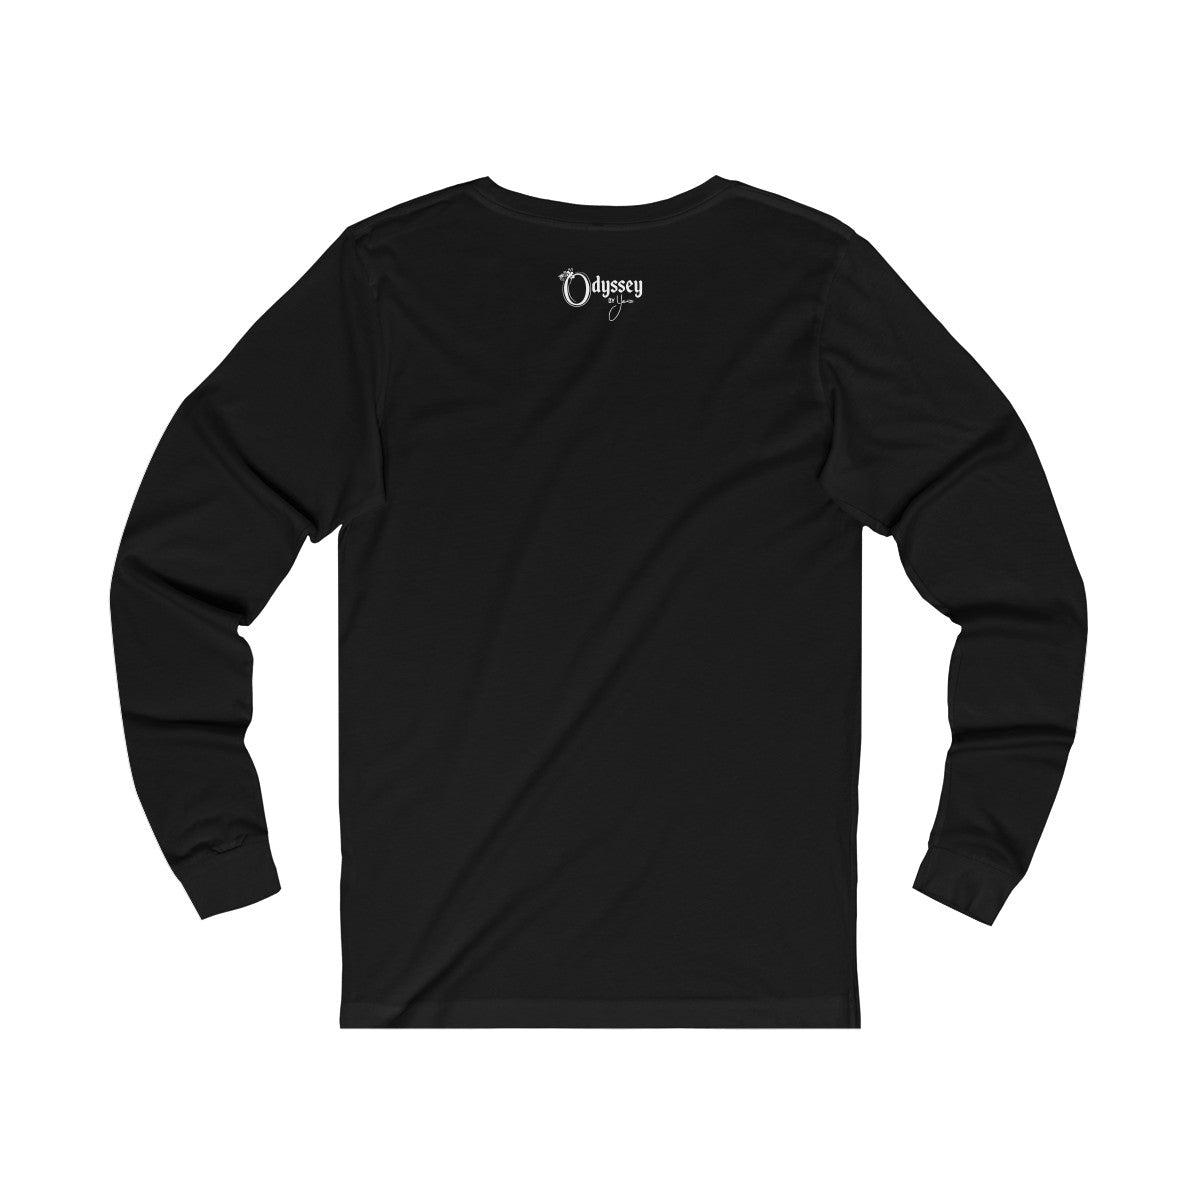 Odyssey Faith Over Fear Women's Long Sleeve Tee